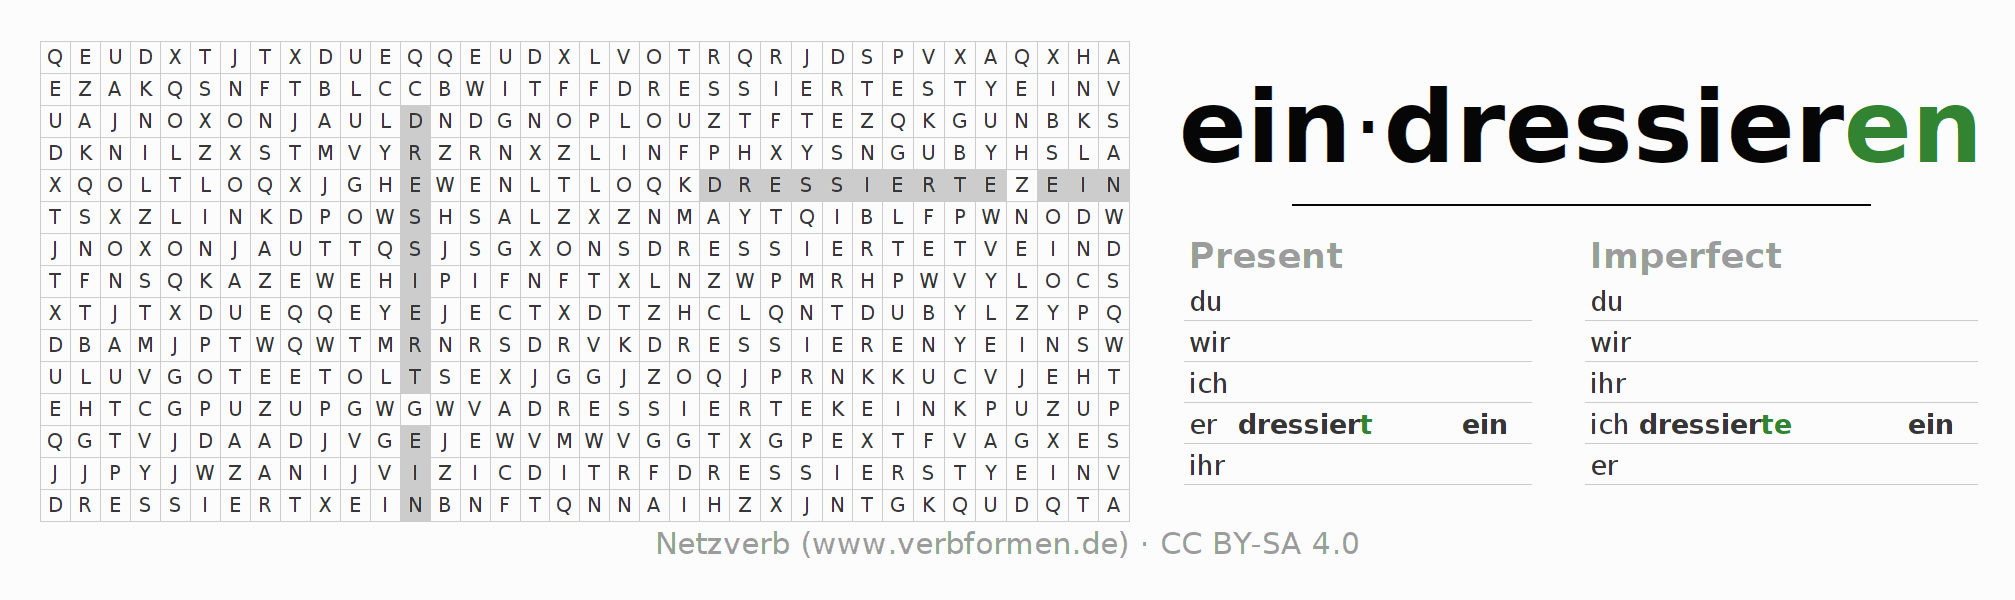 Word search puzzle for the conjugation of the verb eindressieren